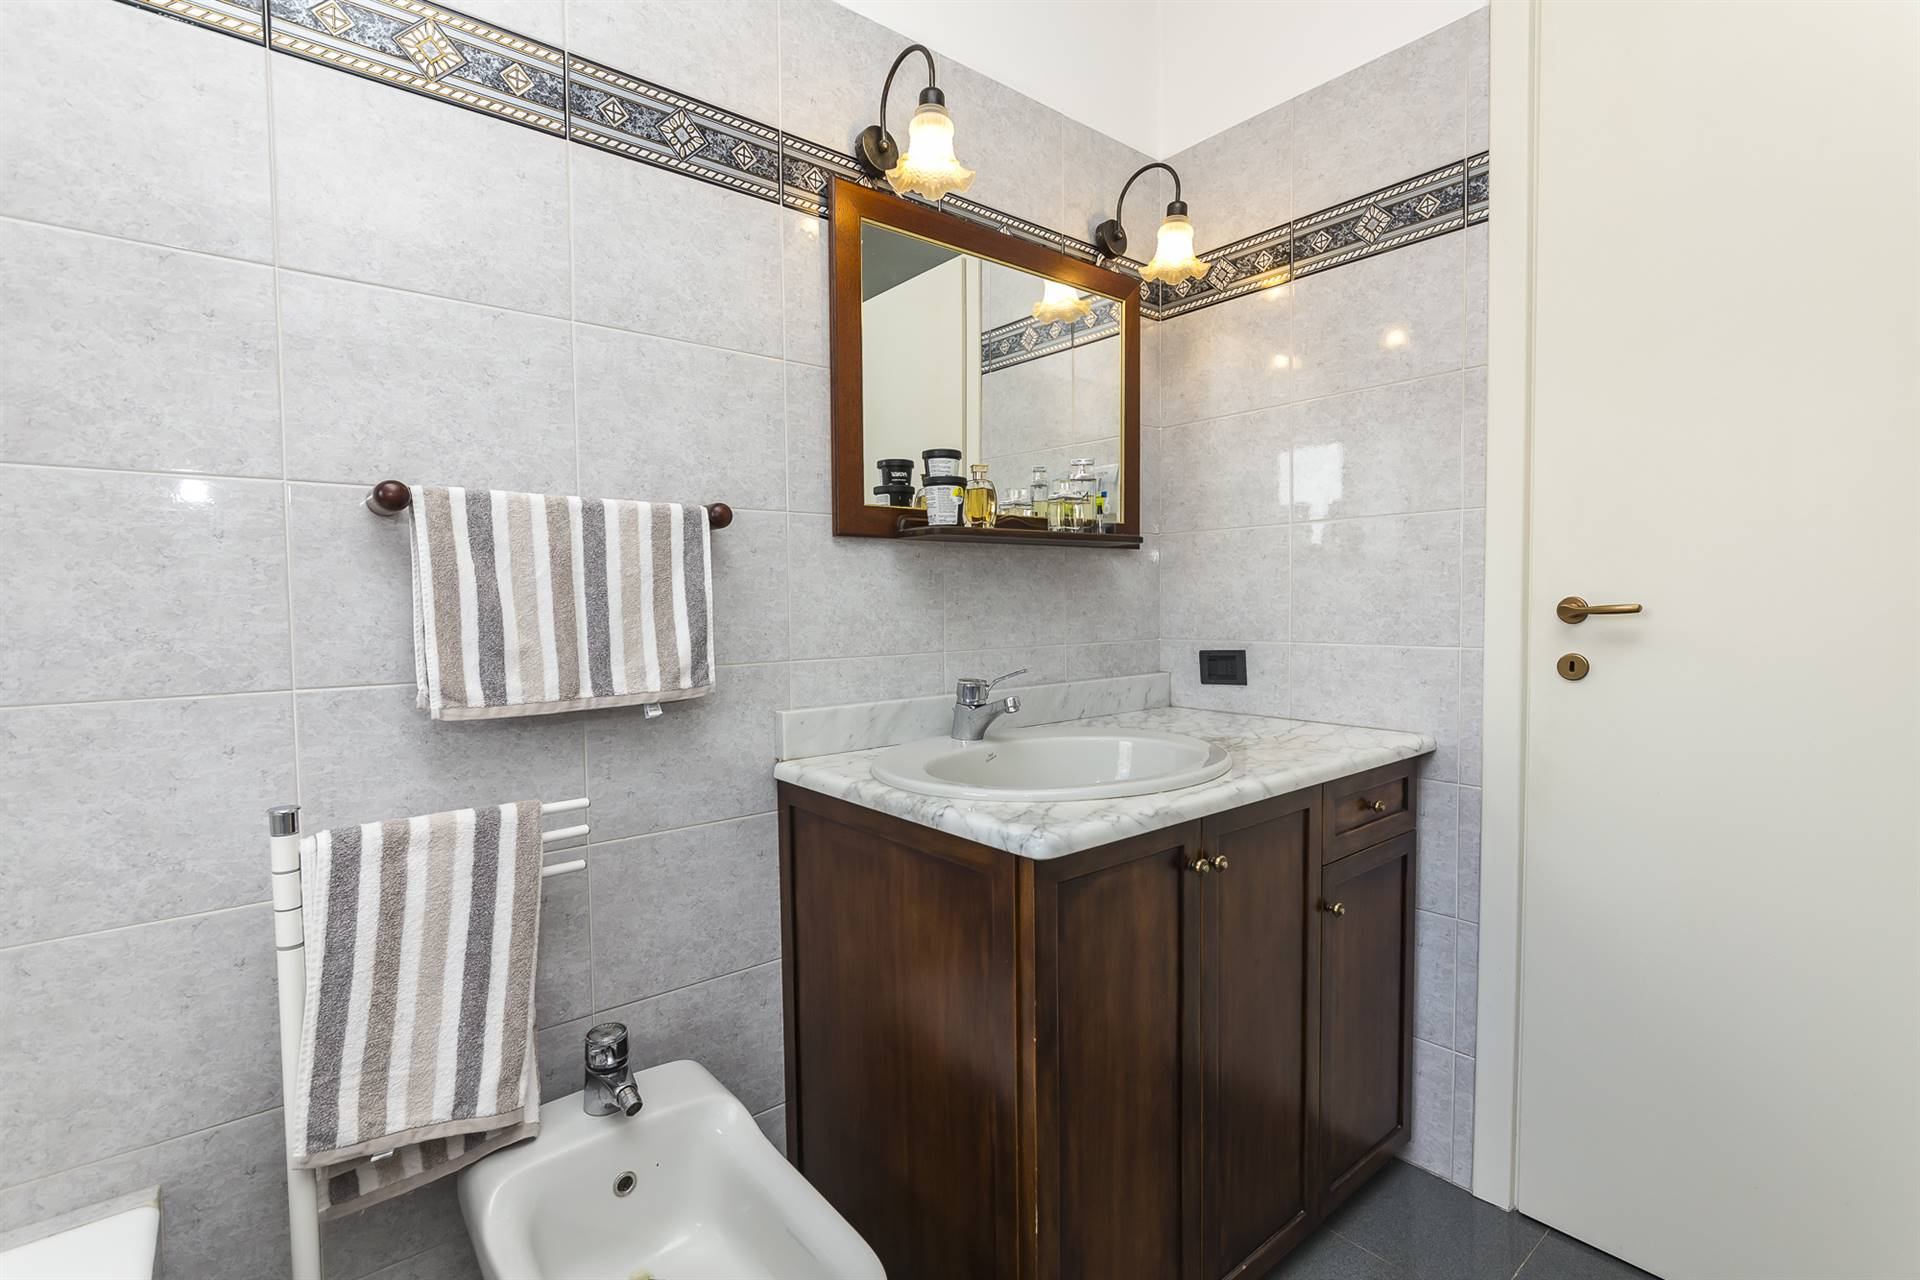 VELATE, USMATE VELATE, Apartment for sale of 119 Sq. mt., Heating Individual heating system, Energetic class: G, Epi: 261,28 kwh/m2 year, placed at